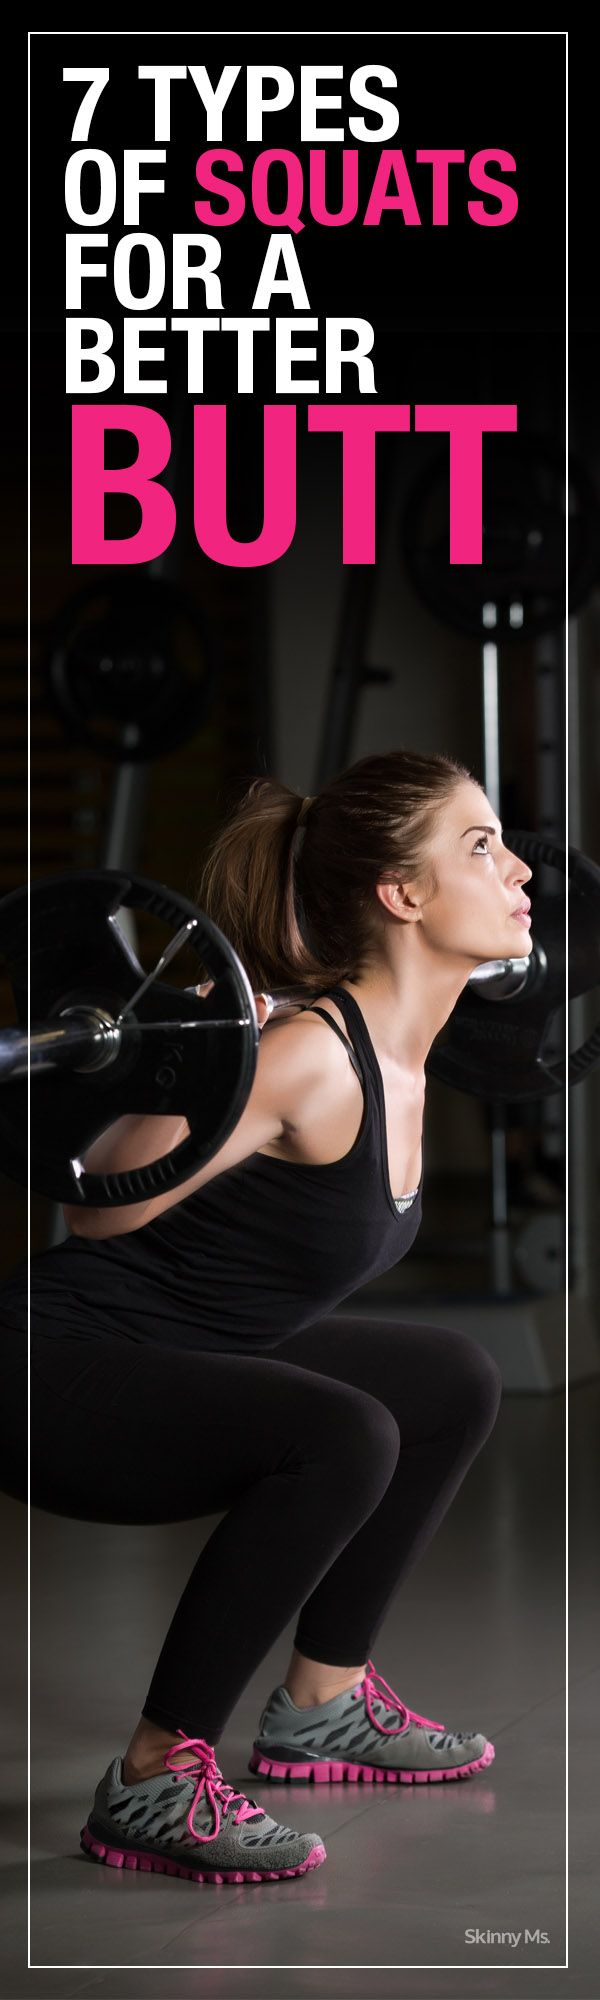 7 Types of Squats for a Better Butt! #squats #fitness #buttworkouts